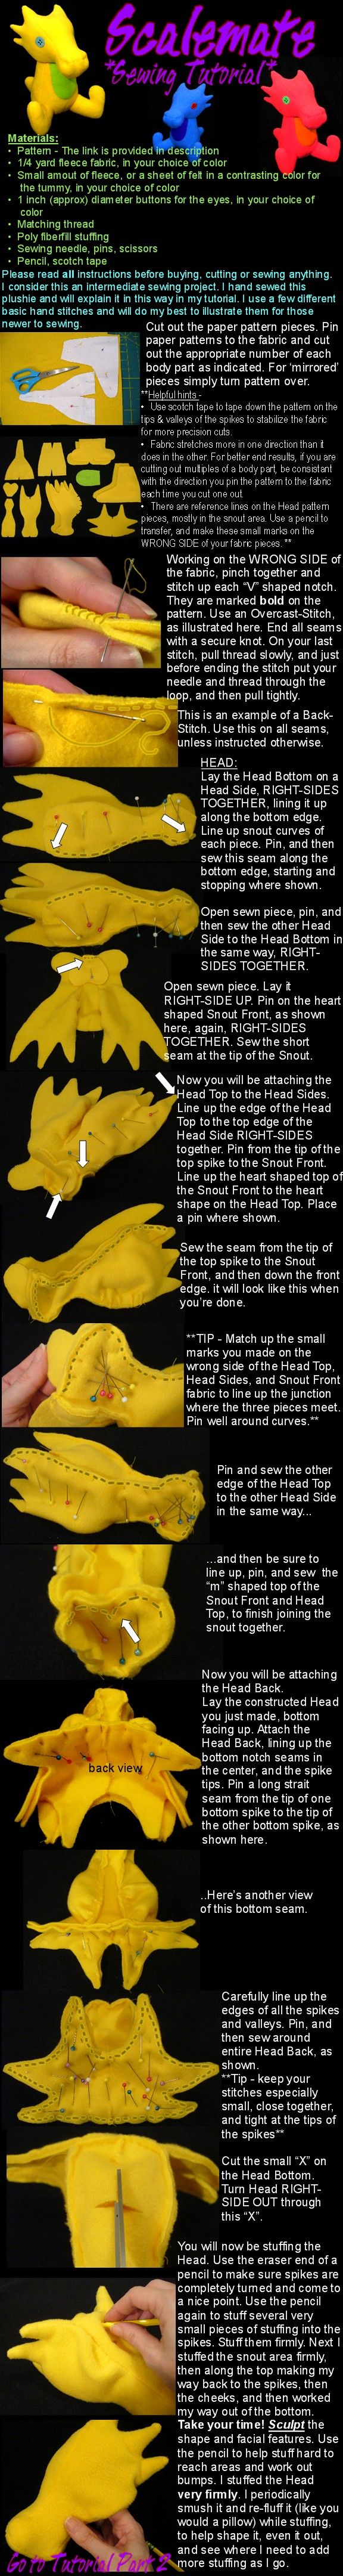 A tutorial for scalemates from Homestuck. A definite project for the future.